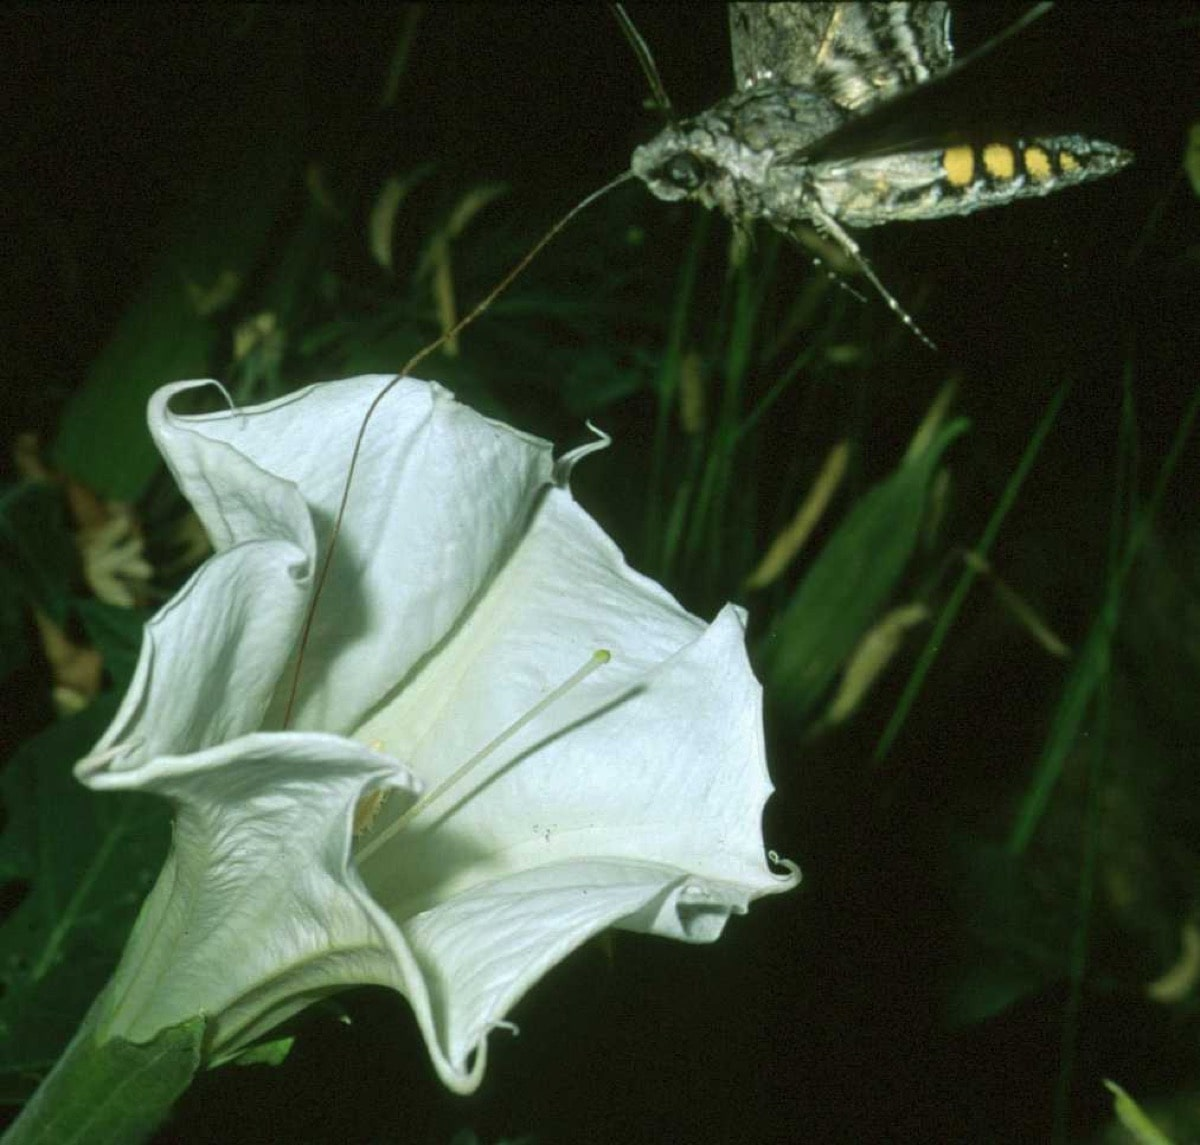 an insect approaches a conical white flower for pollination